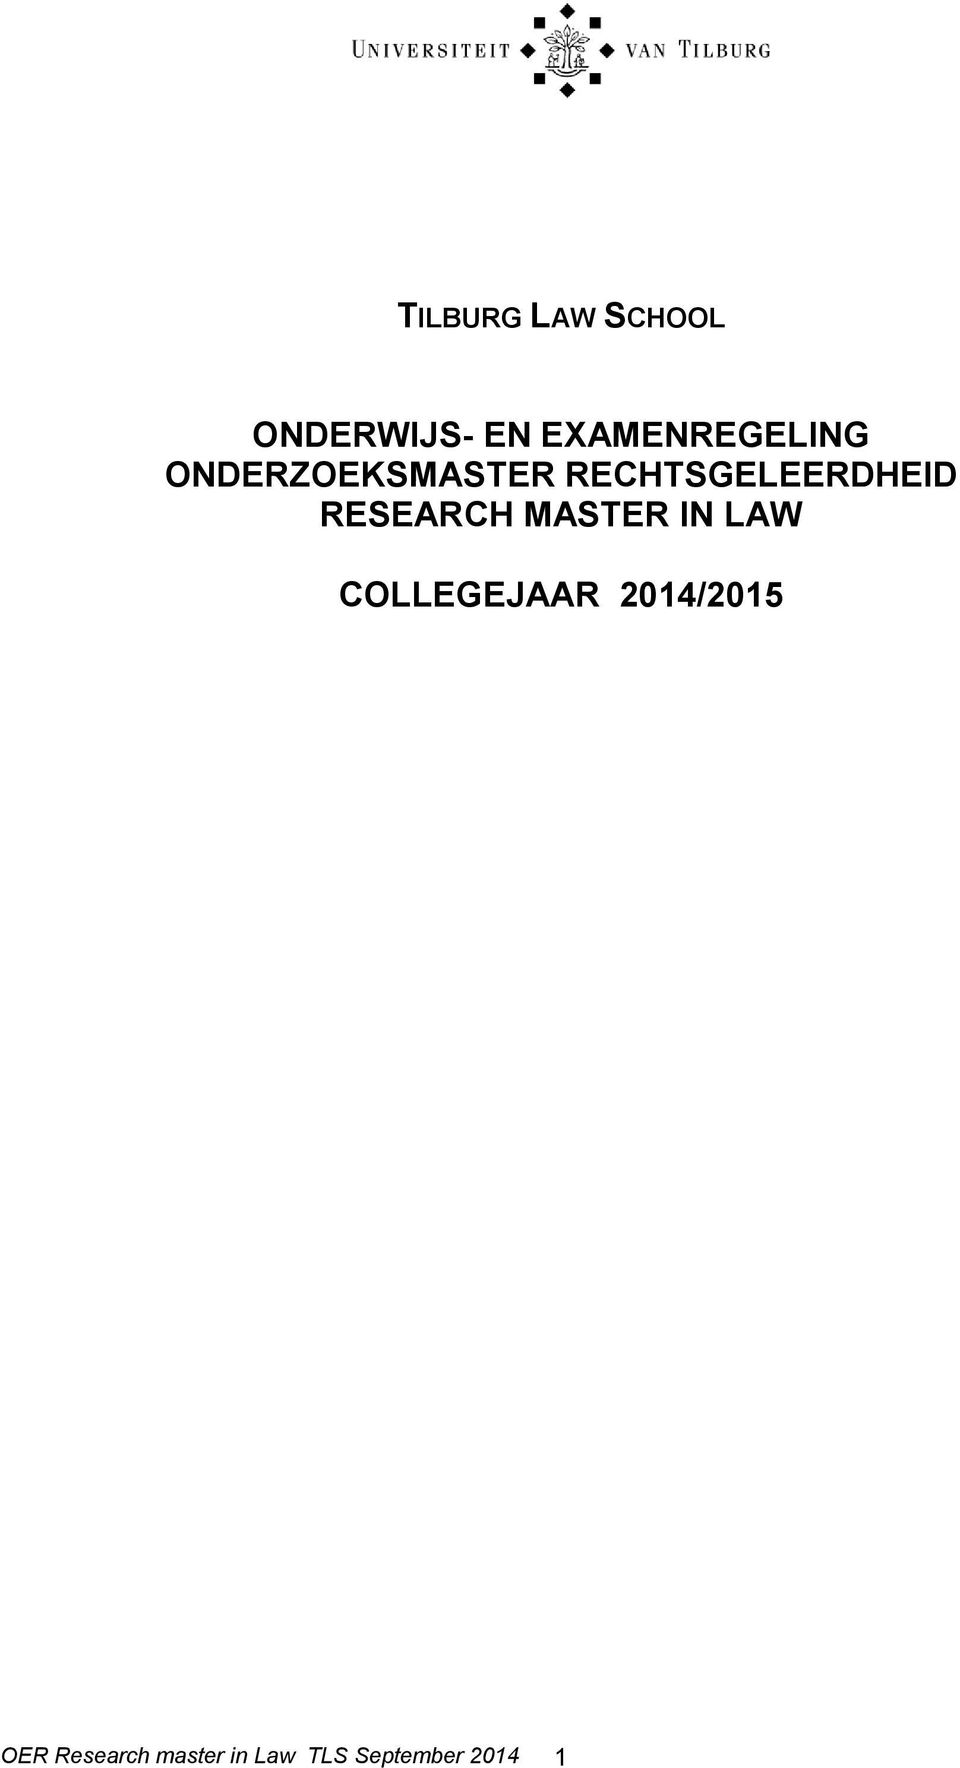 RECHTSGELEERDHEID RESEARCH MASTER IN LAW